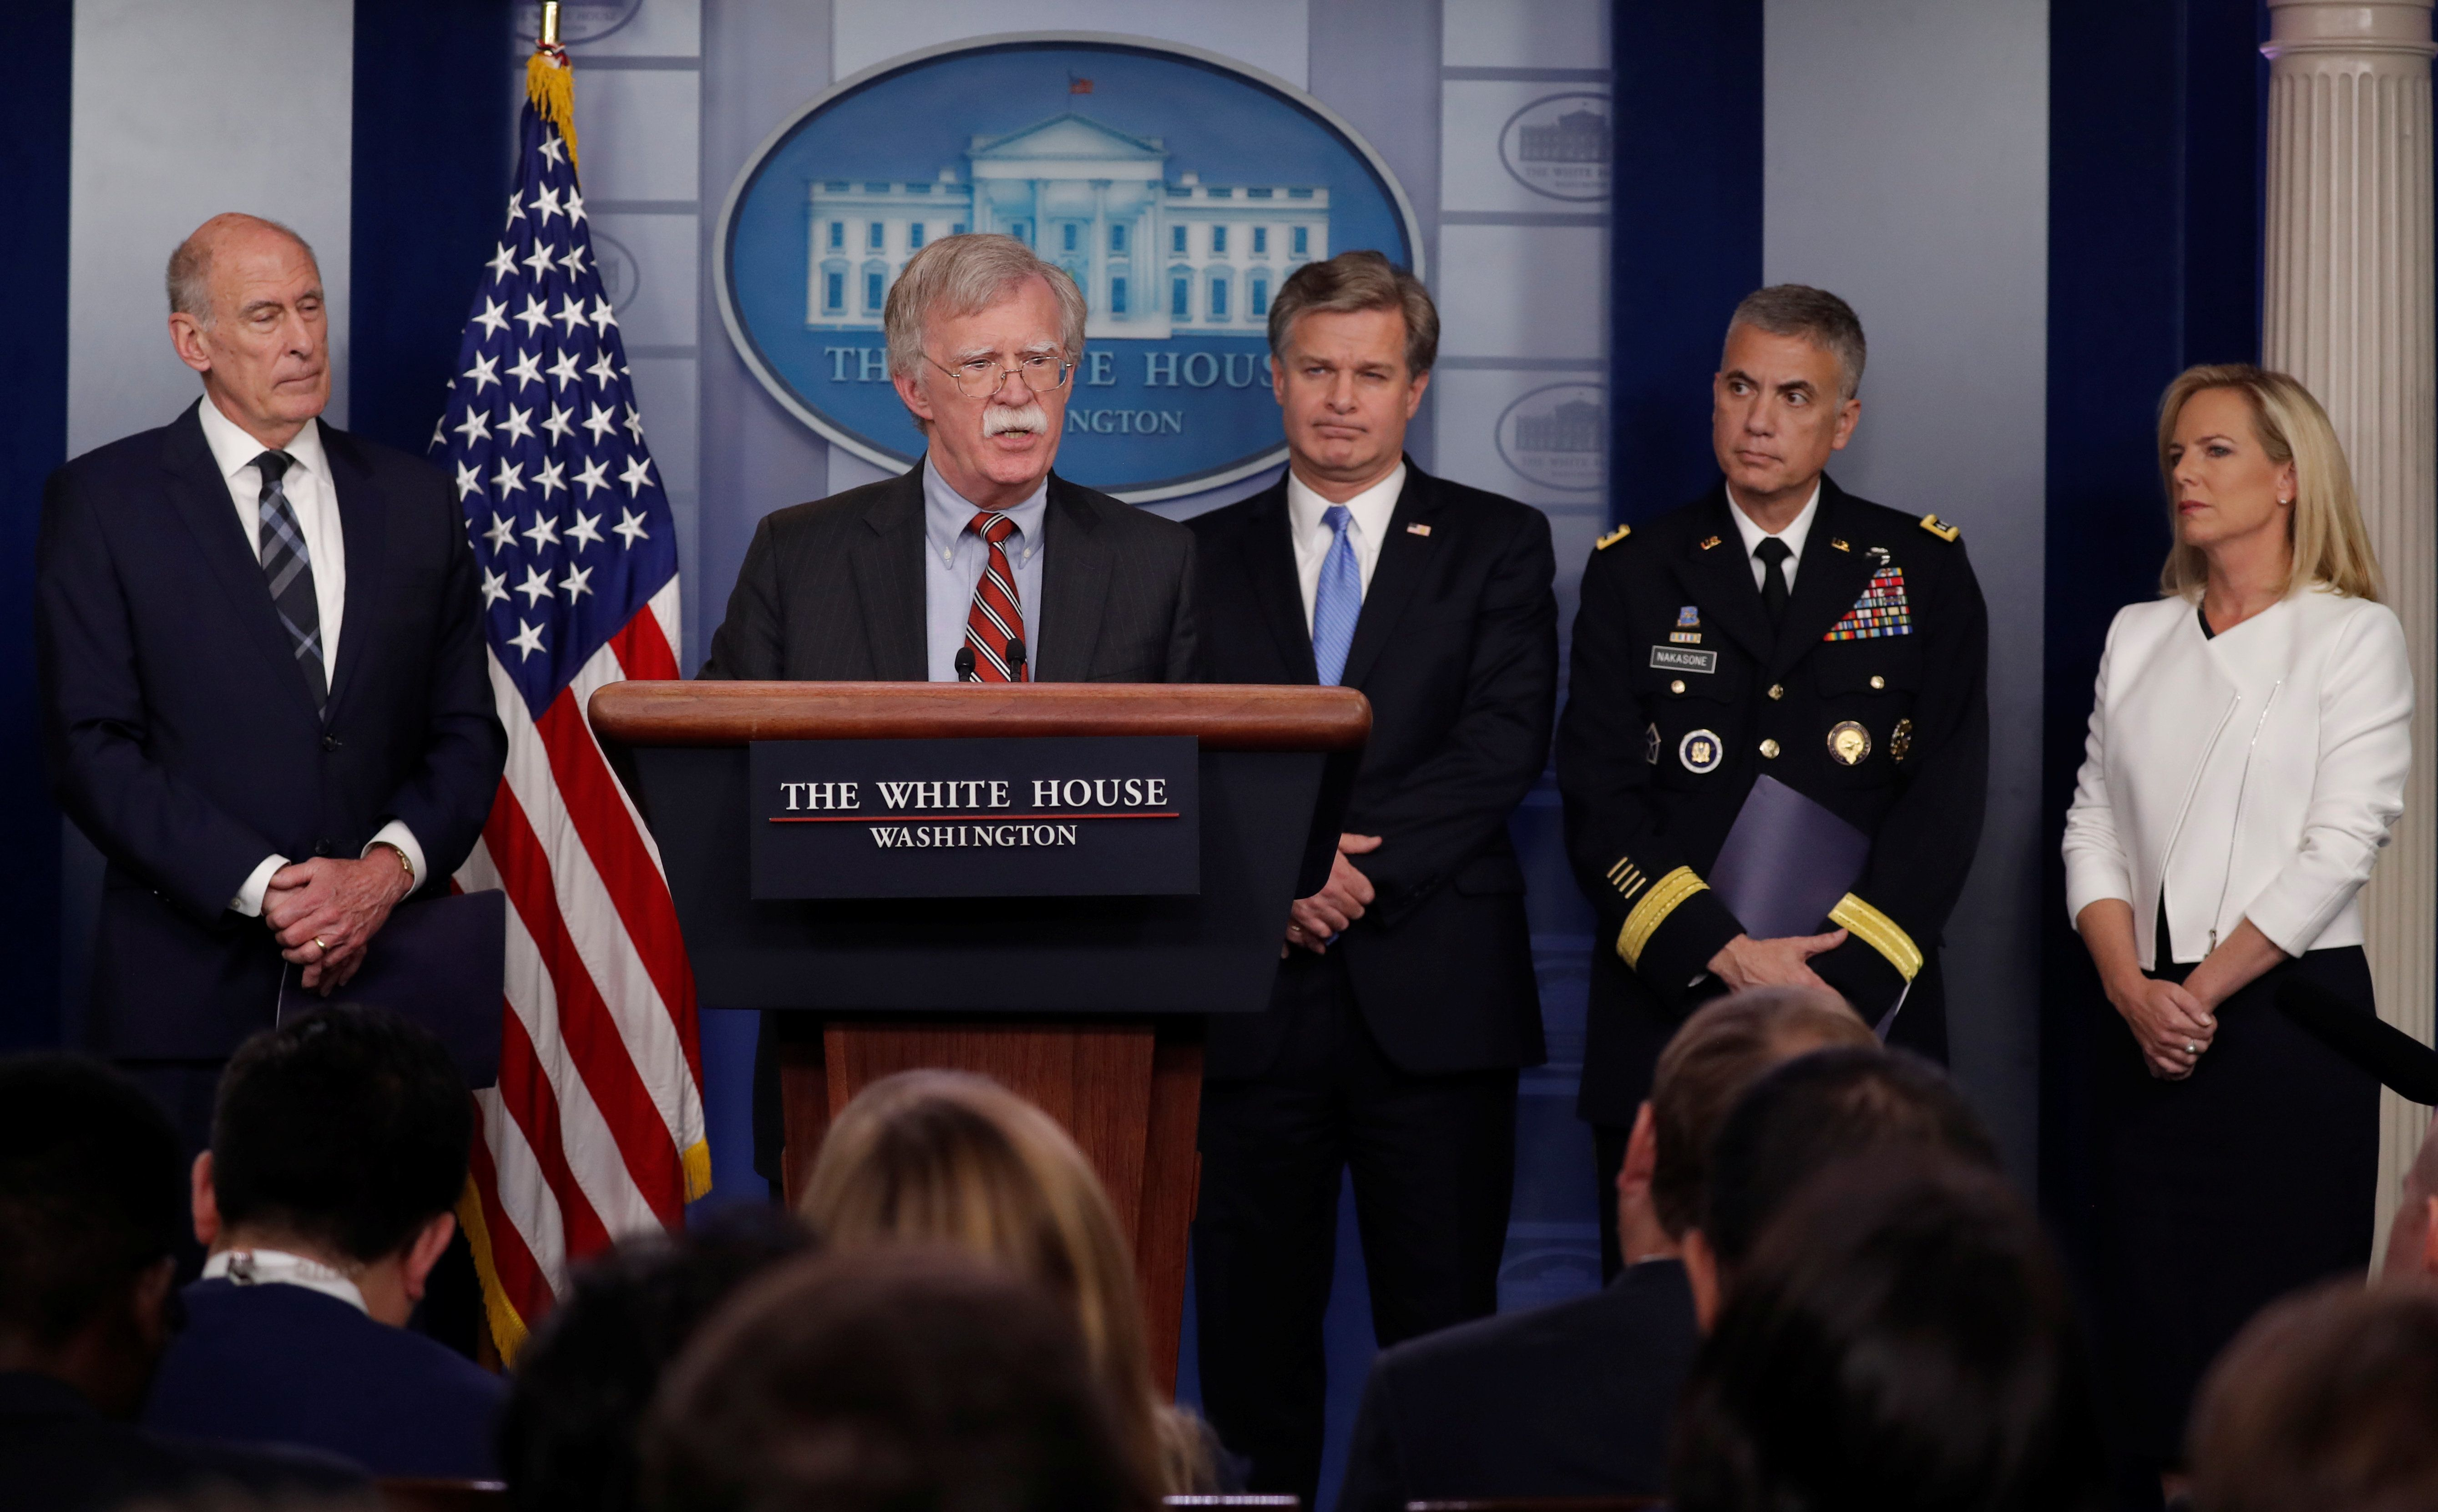 U.S. Director of National Intelligence Dan Coats, White House National Security Advisor John Bolton, FBI Director Christopher Wray, National Security Agency (NSA) Director General Paul Nakasone and Department of Homeland Security (DHS) Secretary Kirstjen Nielsen hold a briefing on election security in the White House press briefing room at the White House in Washington, U.S., August 2, 2018.  REUTERS/Carlos Barria